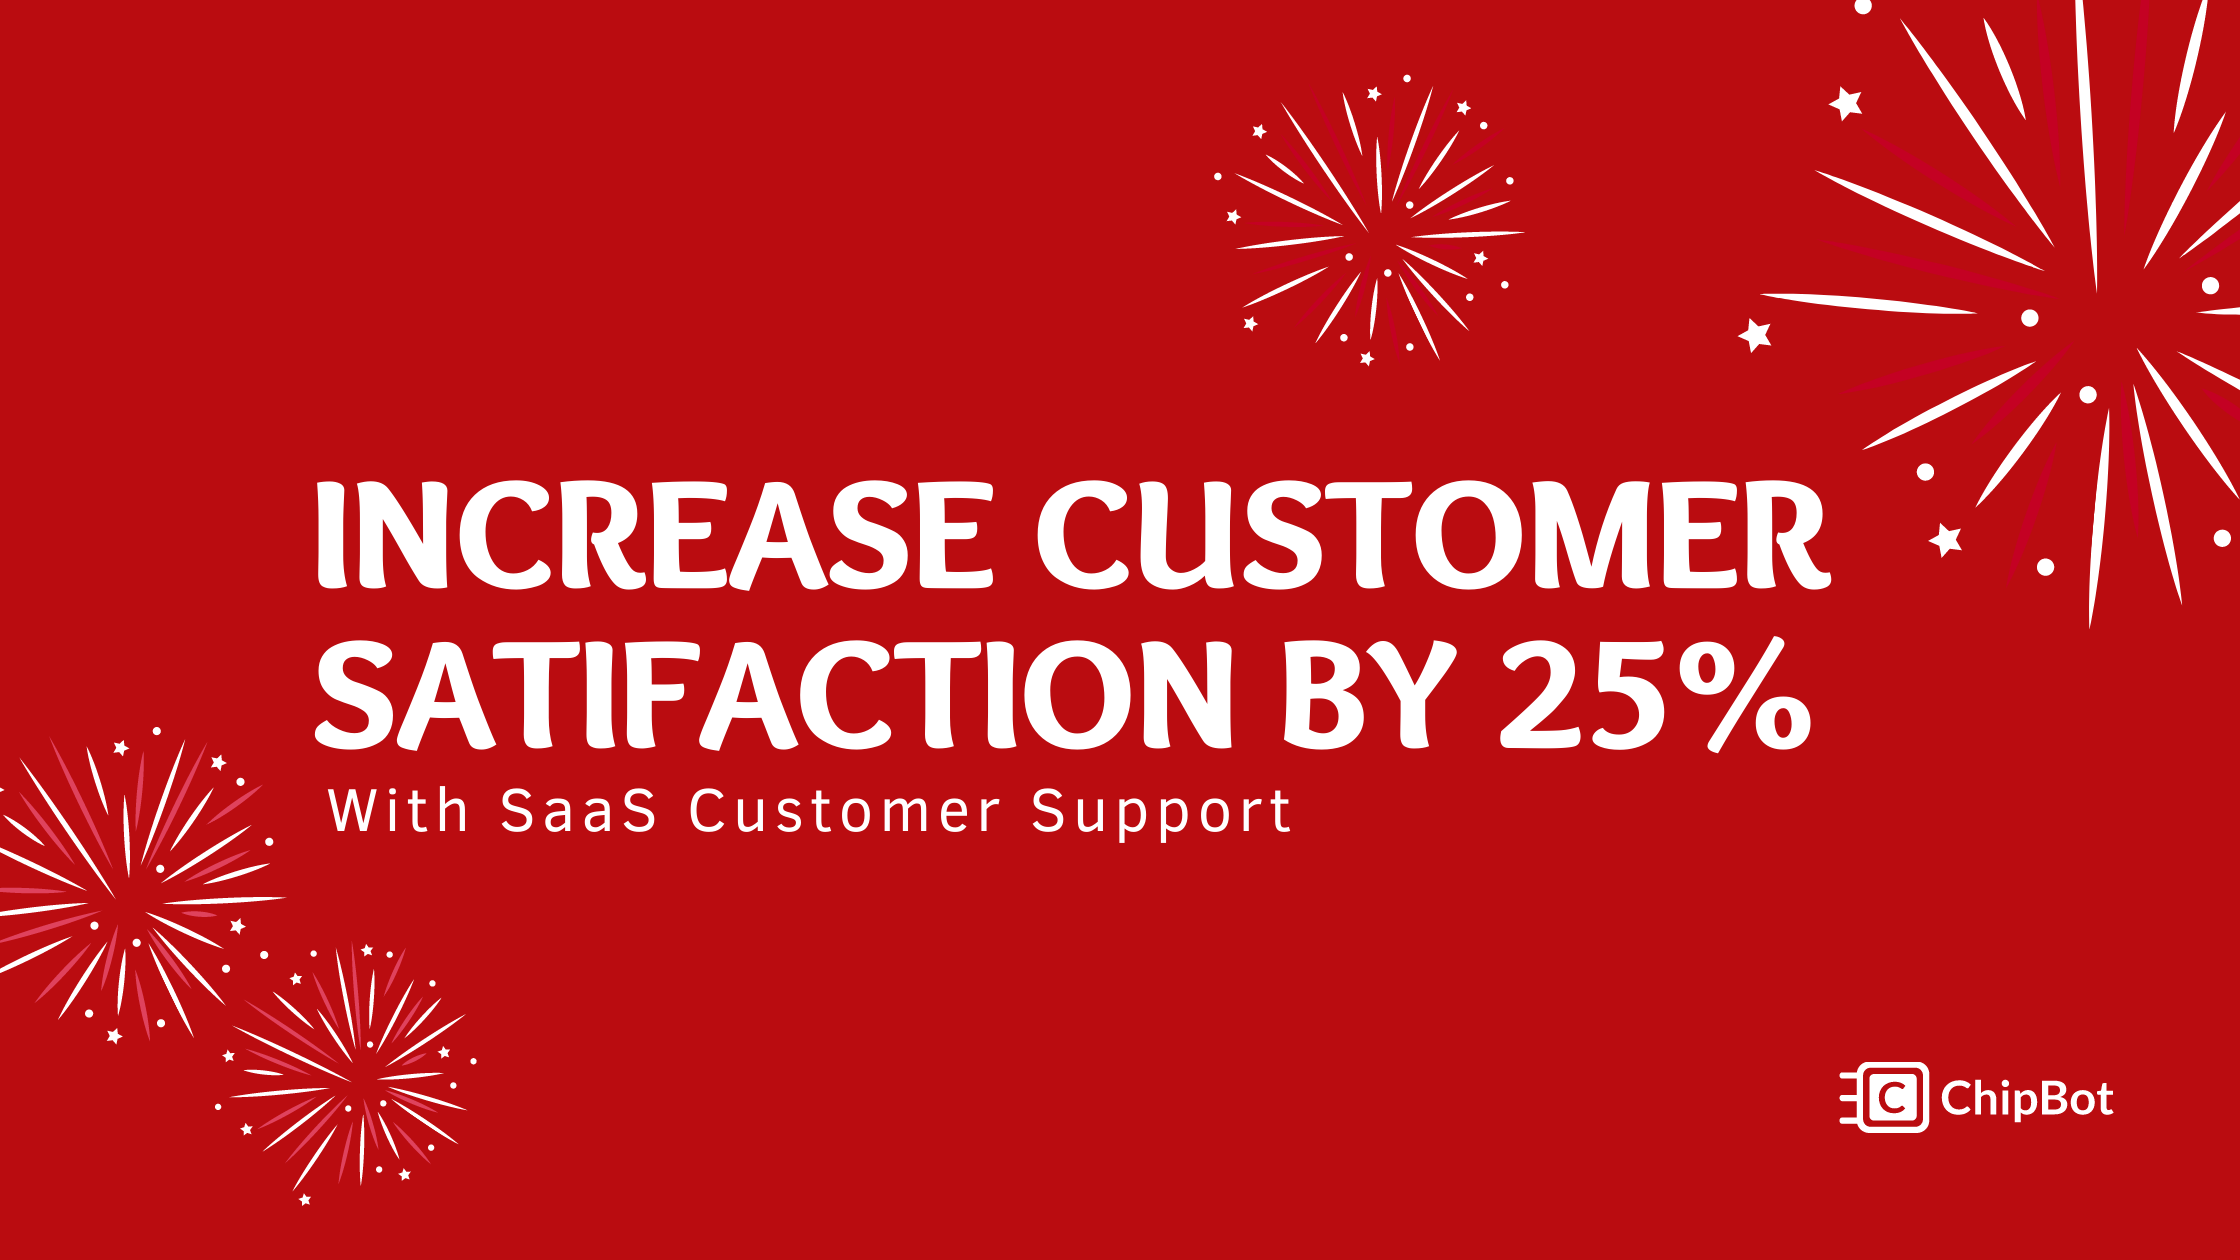 The SaaS Customer Support that You Need to Drive More Satisfaction